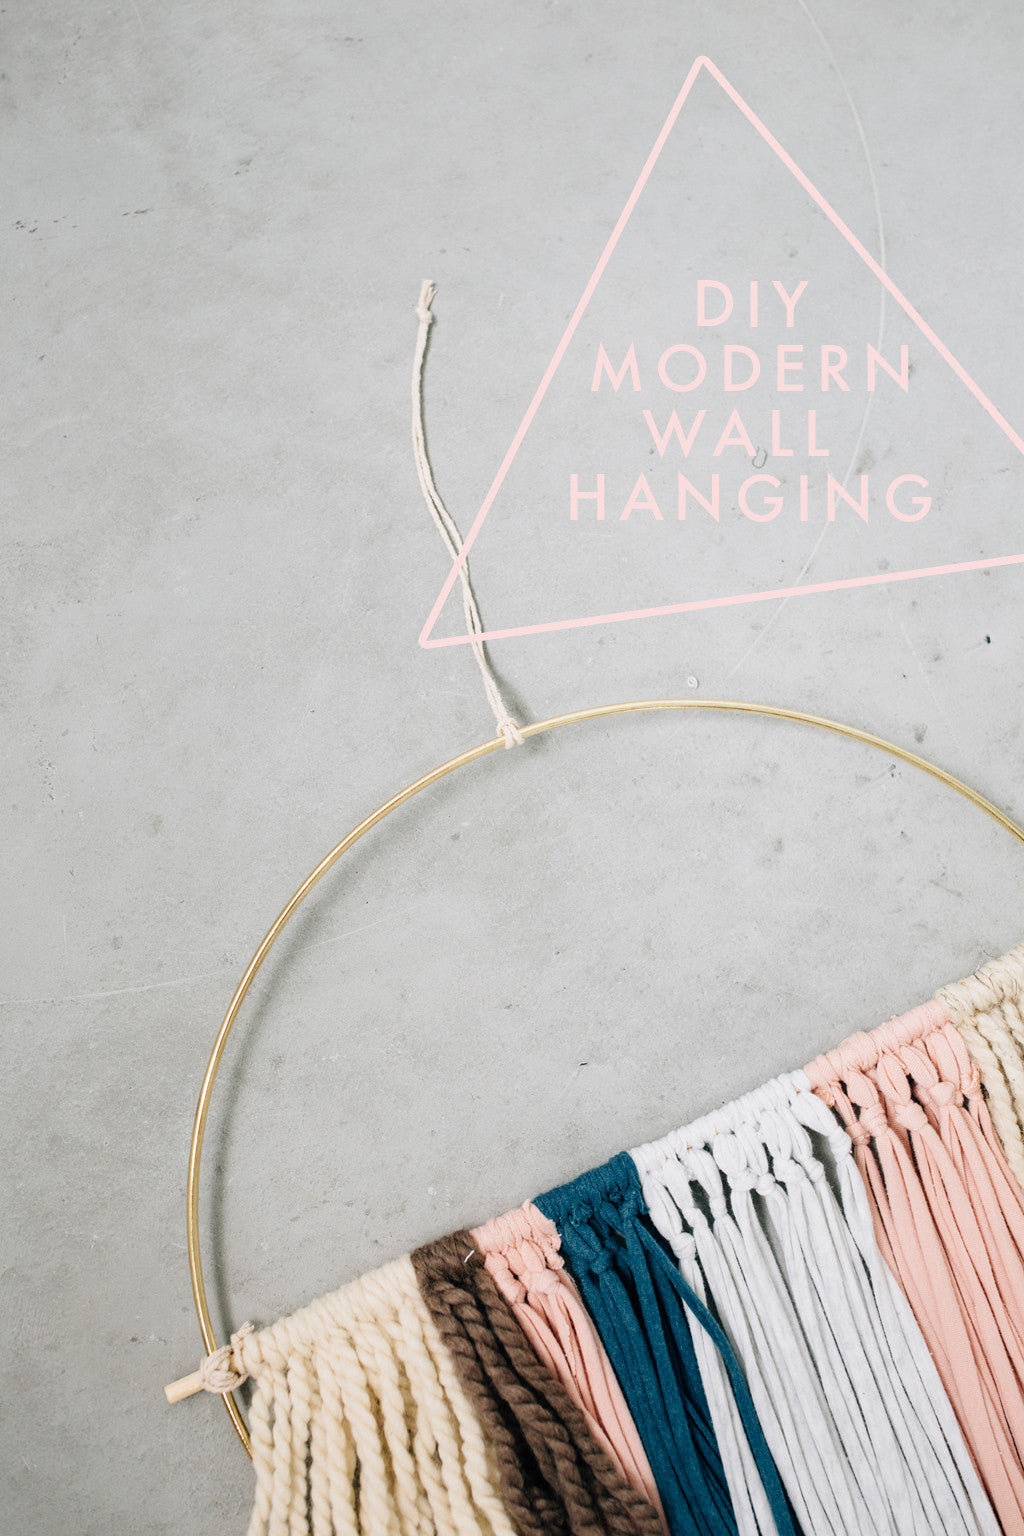 DIY Modern Wall Hanging!